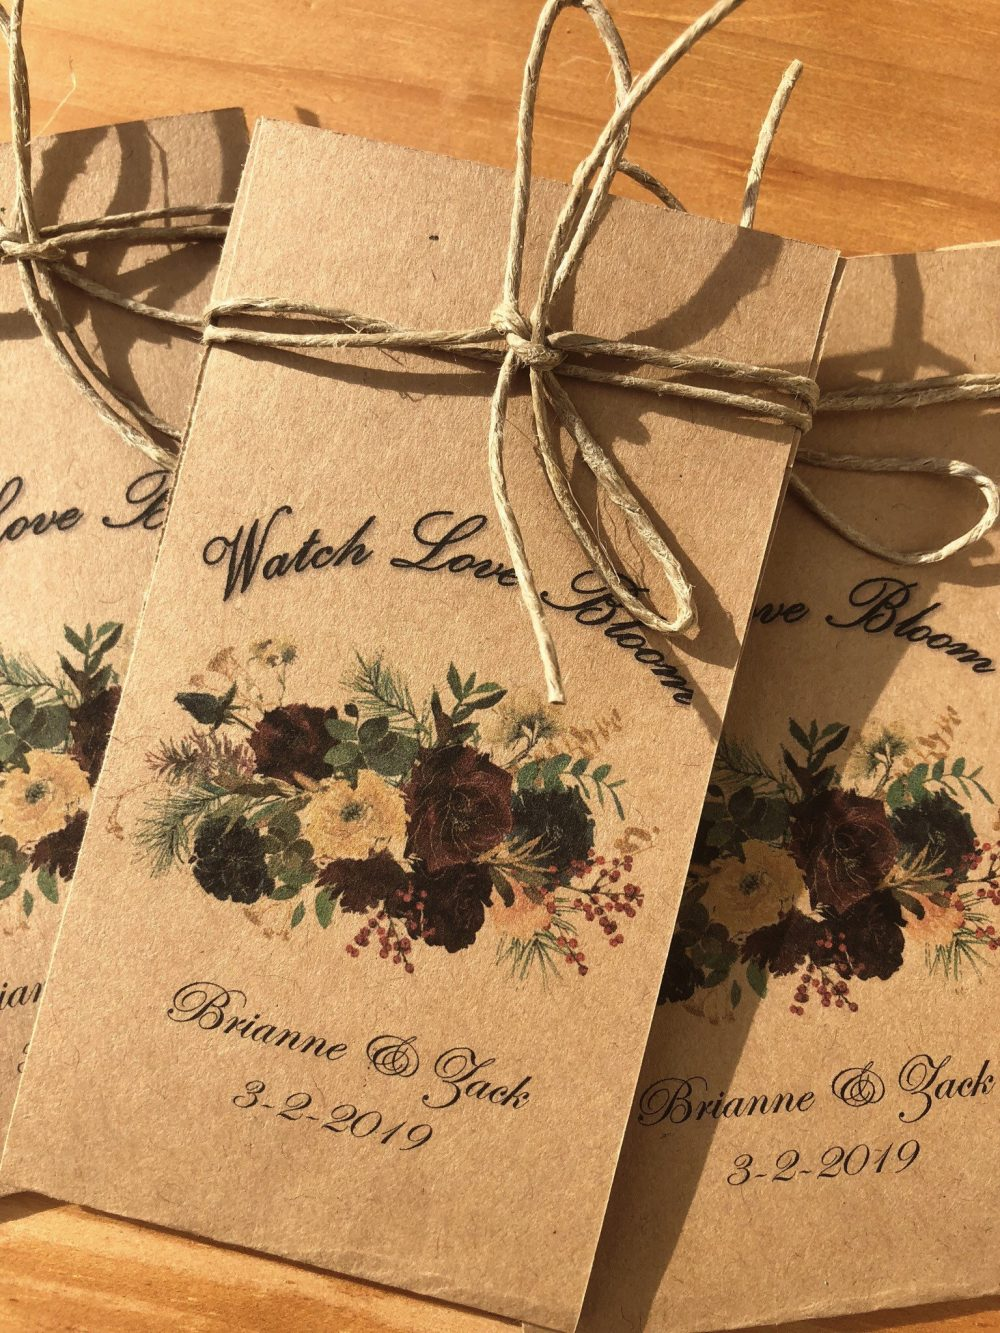 180 Flower Seed Favors - Boho Wedding Favors Seeds Included Favor Packets Burgundy Custom